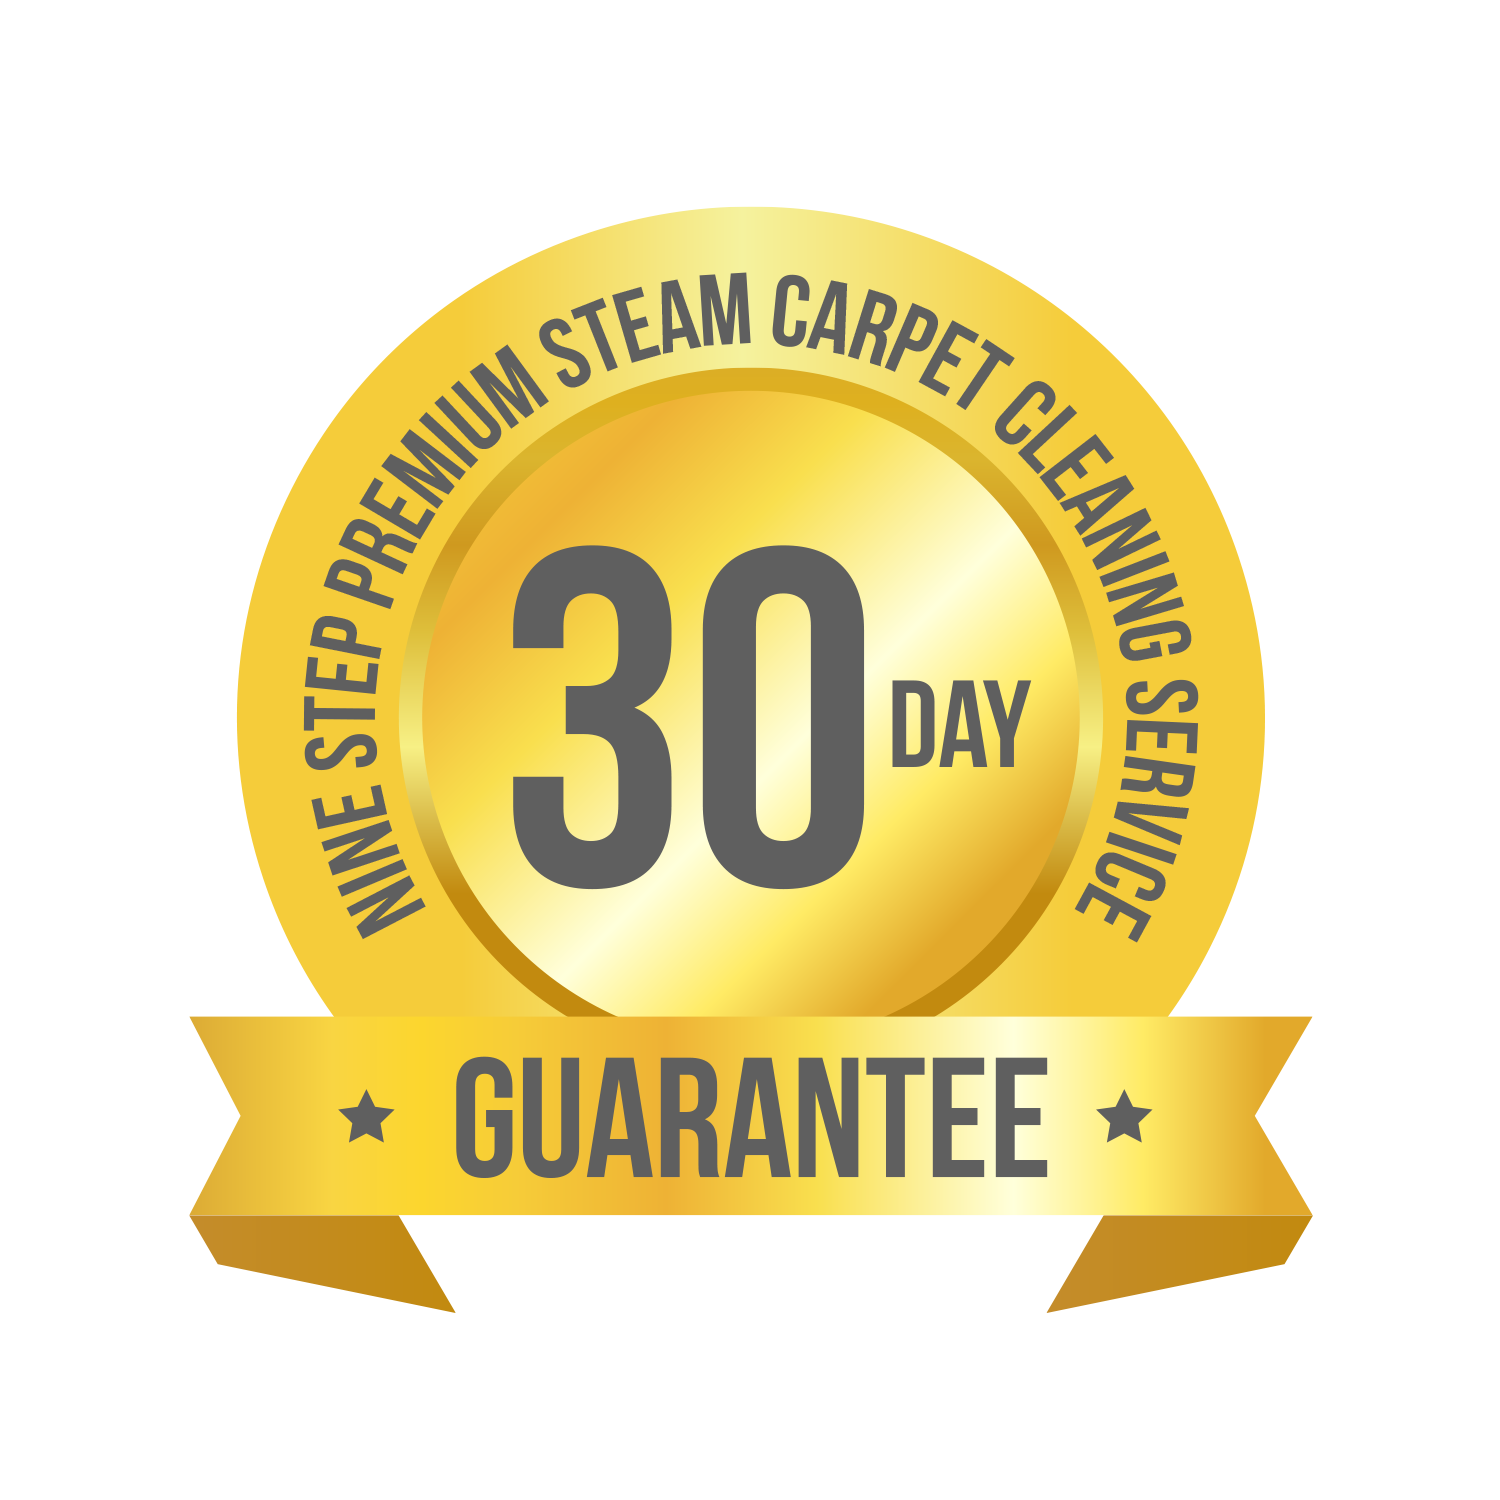 Nine Step 30 day guarantee logo